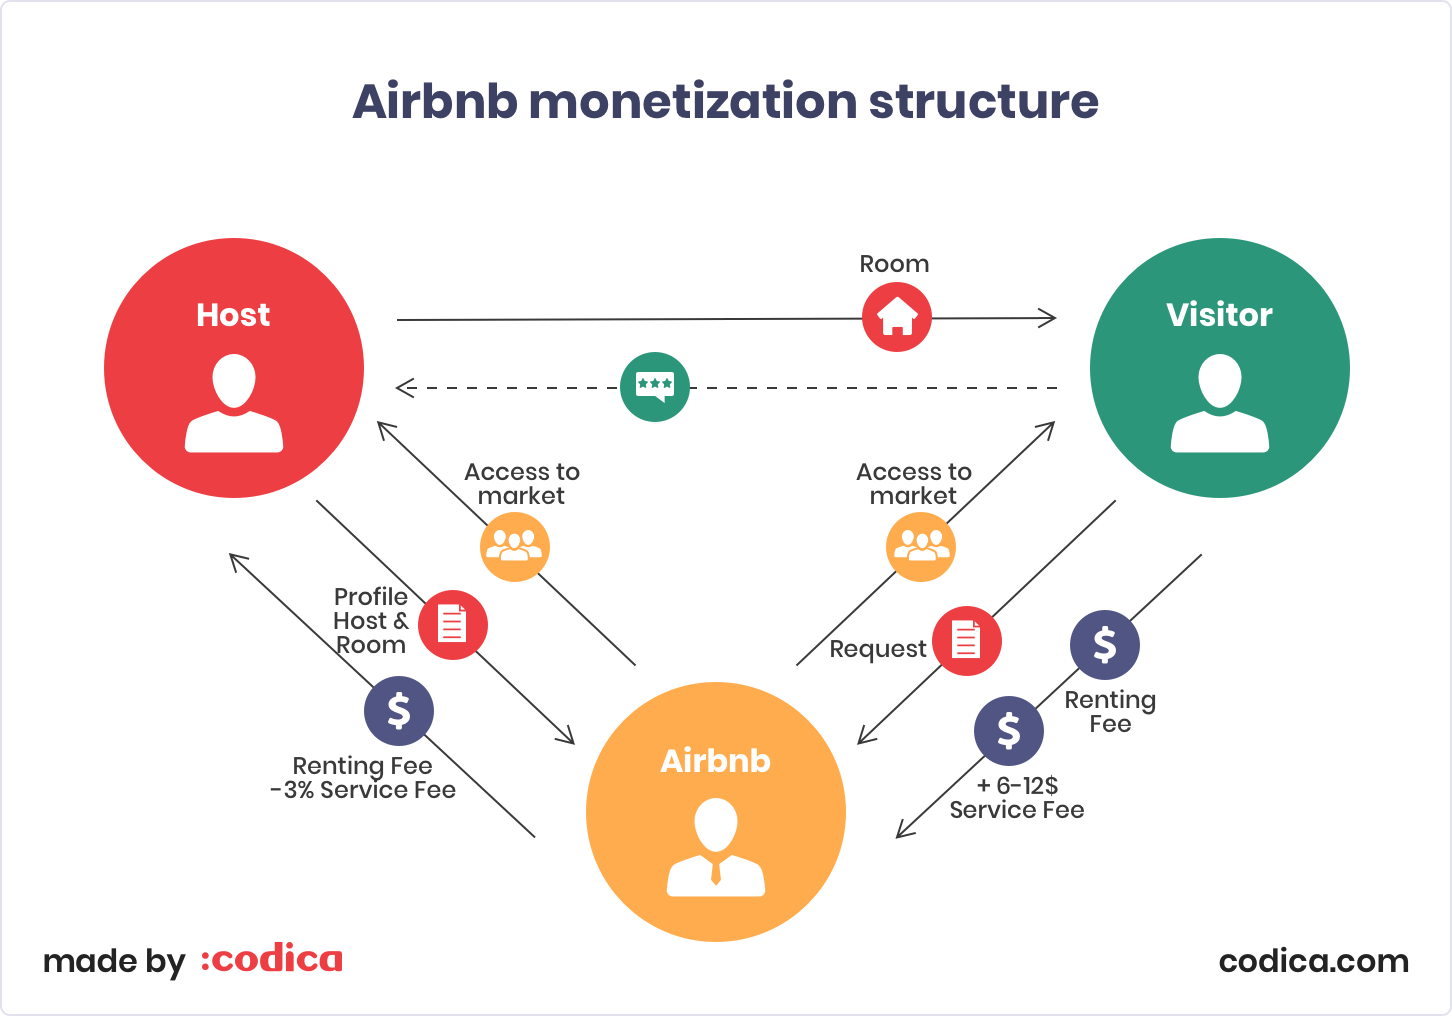 Airbnb monetization structure | Codica